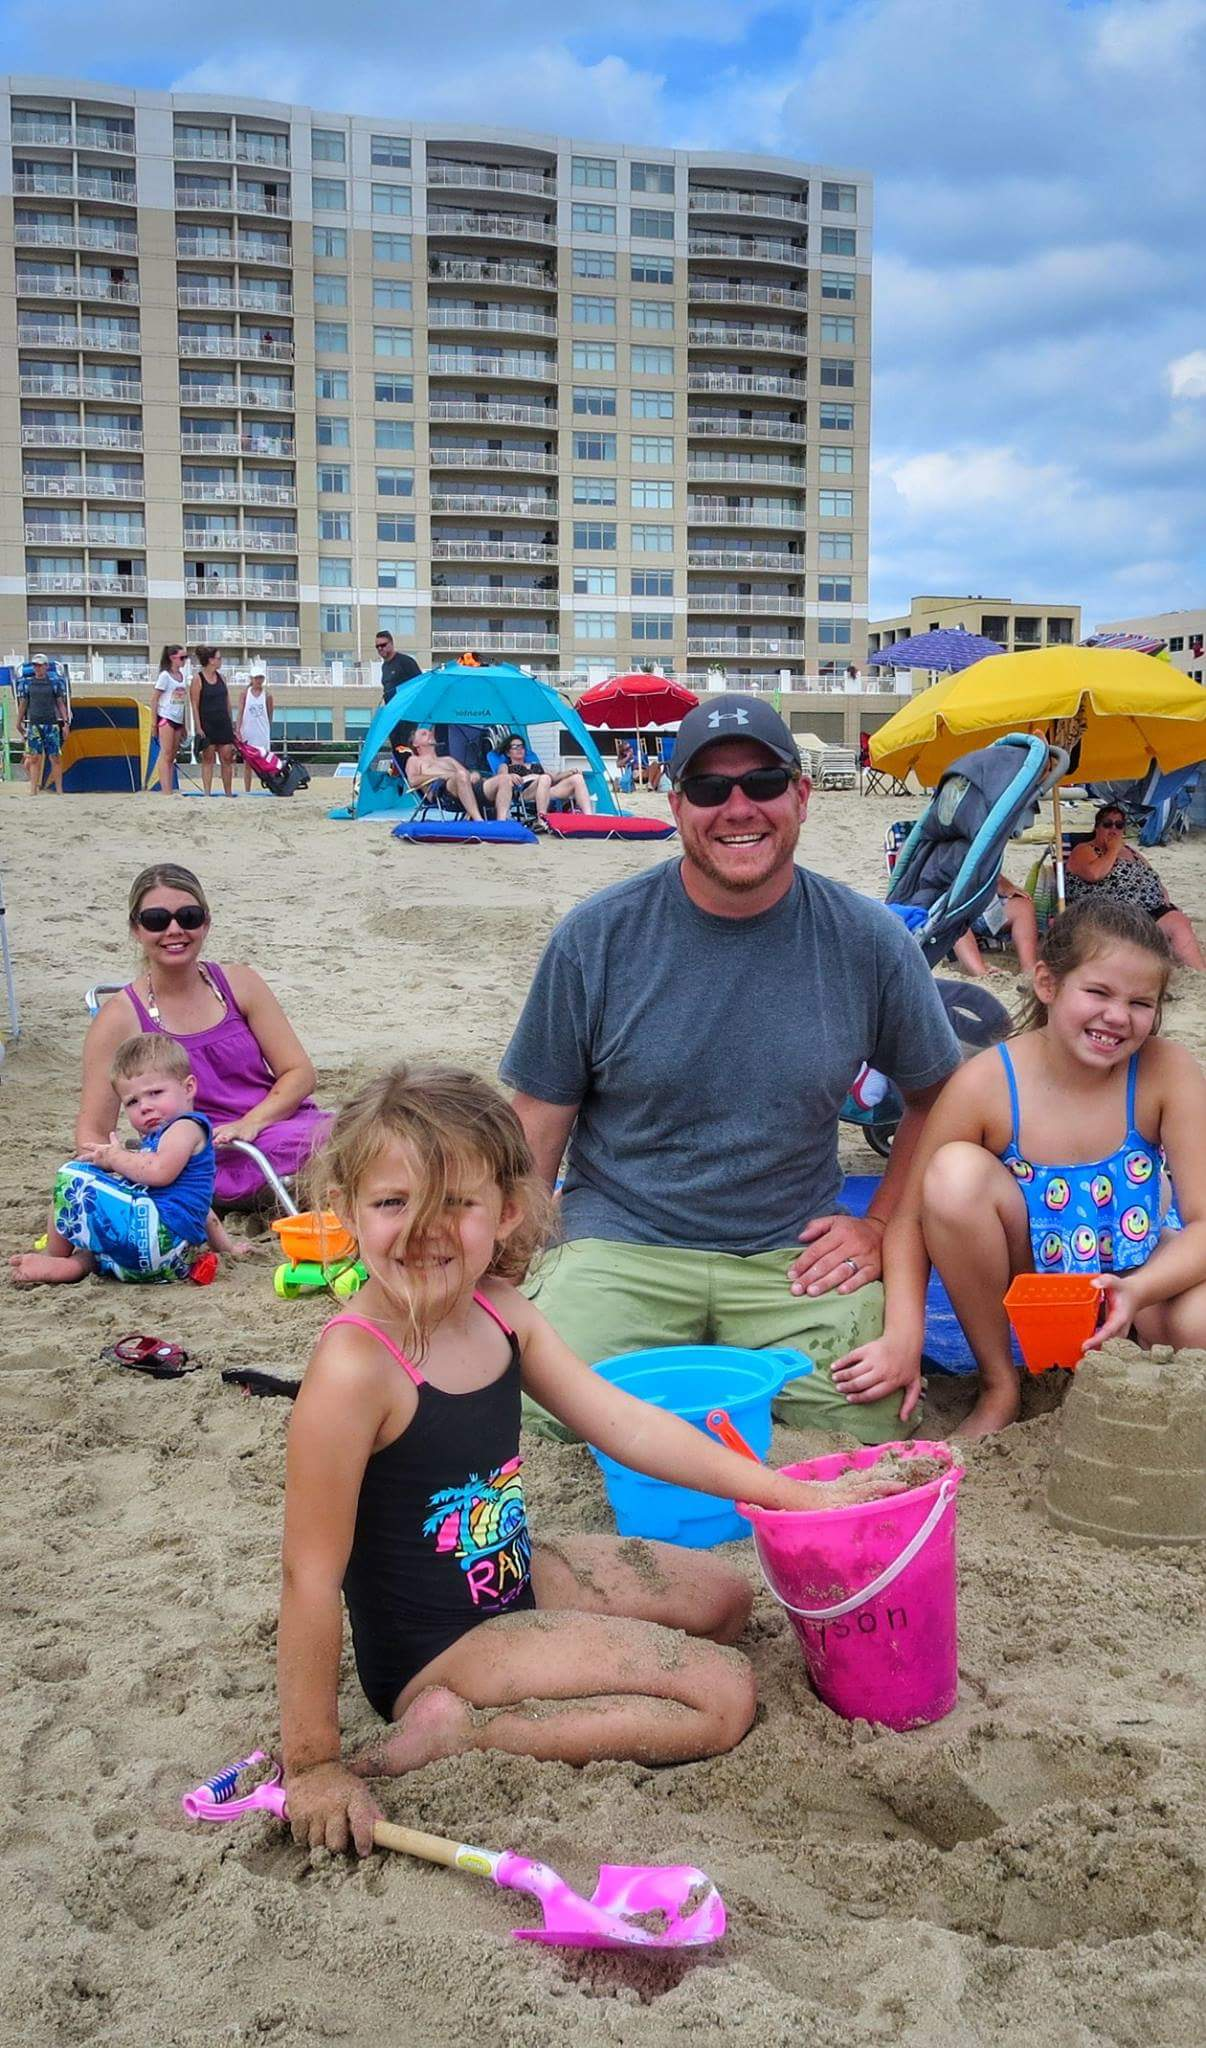 Roy Ryan enjoying some beach time with his family